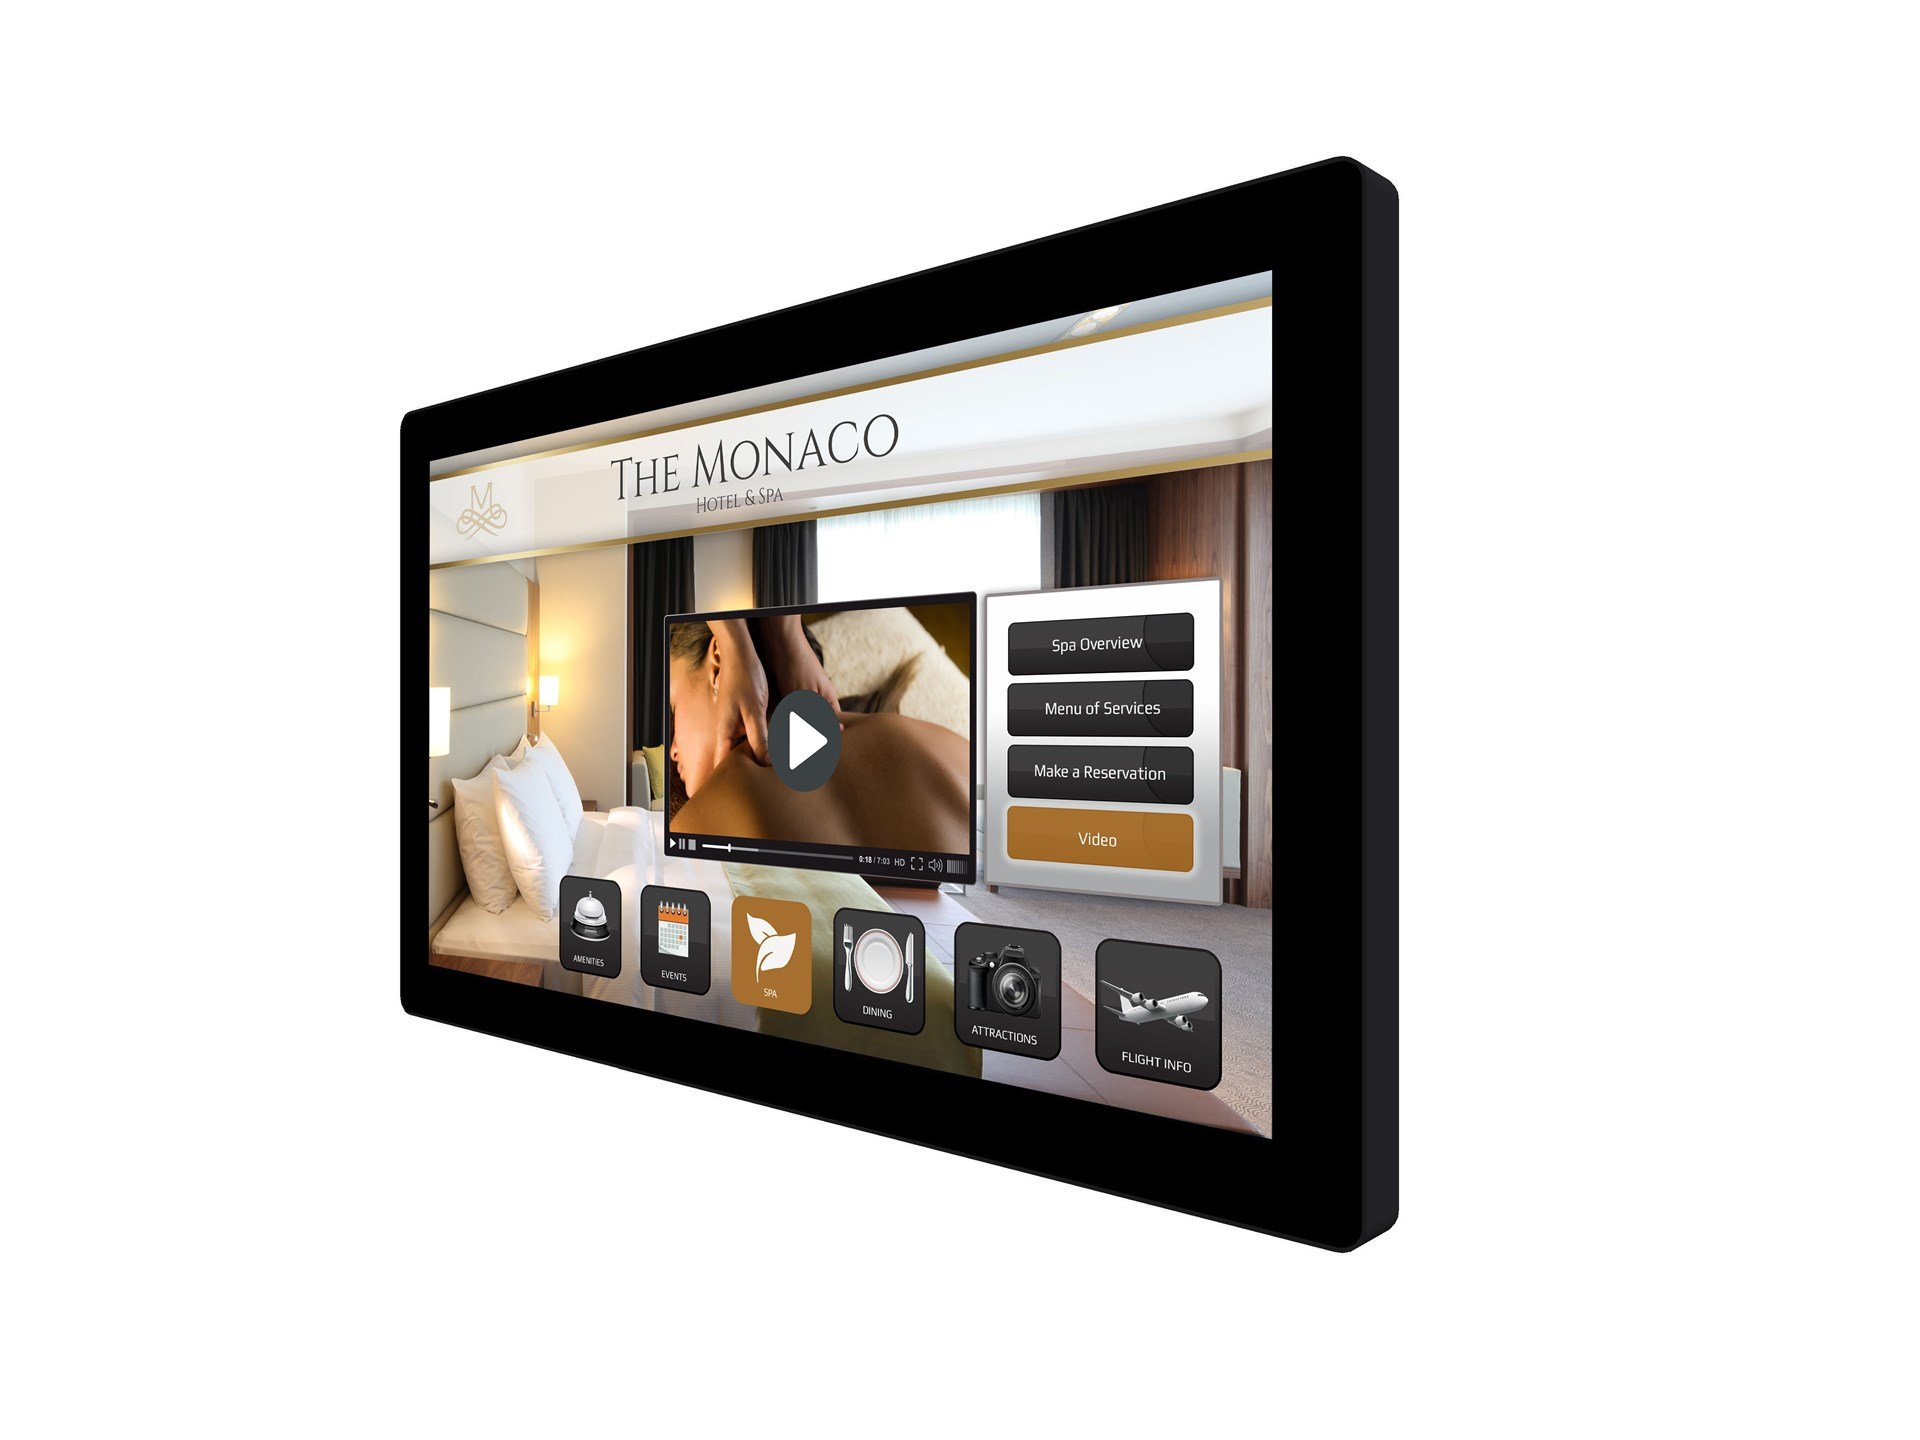 Planar Systems 997-8492-00 Planar, 32 Inch Wide Black Projected Capacitive Multi Touch Fho Edge Lit Led LCD USB Controller Hdmi Dp Dvi-D and Vga Inputs Control Via Rs-232